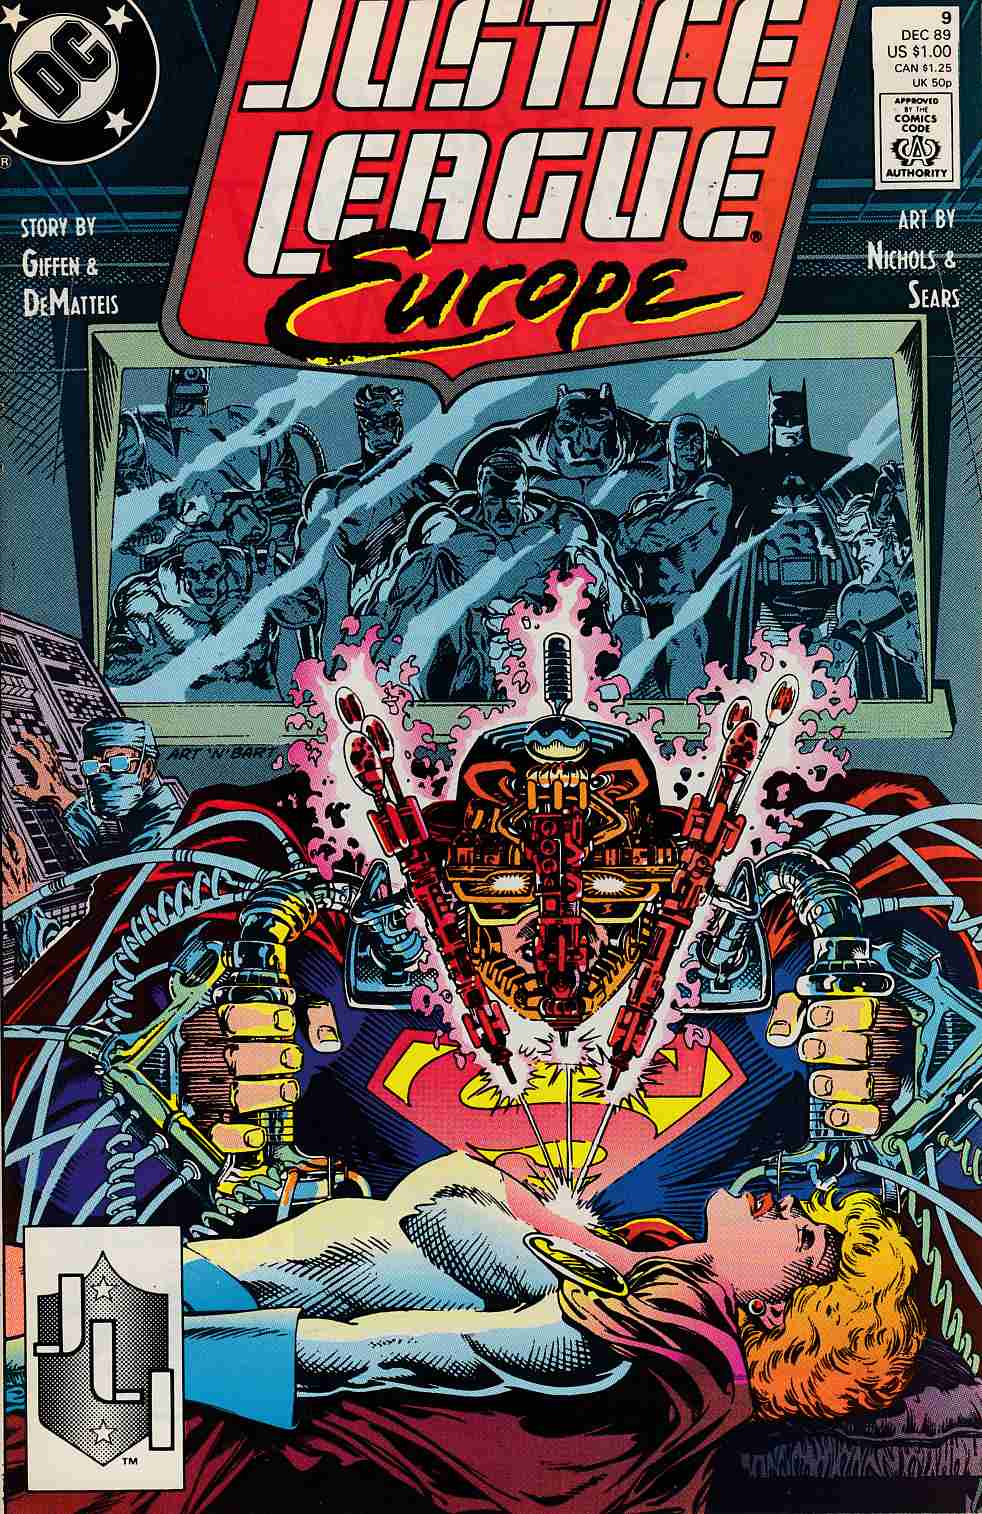 Justice League Europe #9 Near Mint (9.4) [DC Comic]_THUMBNAIL